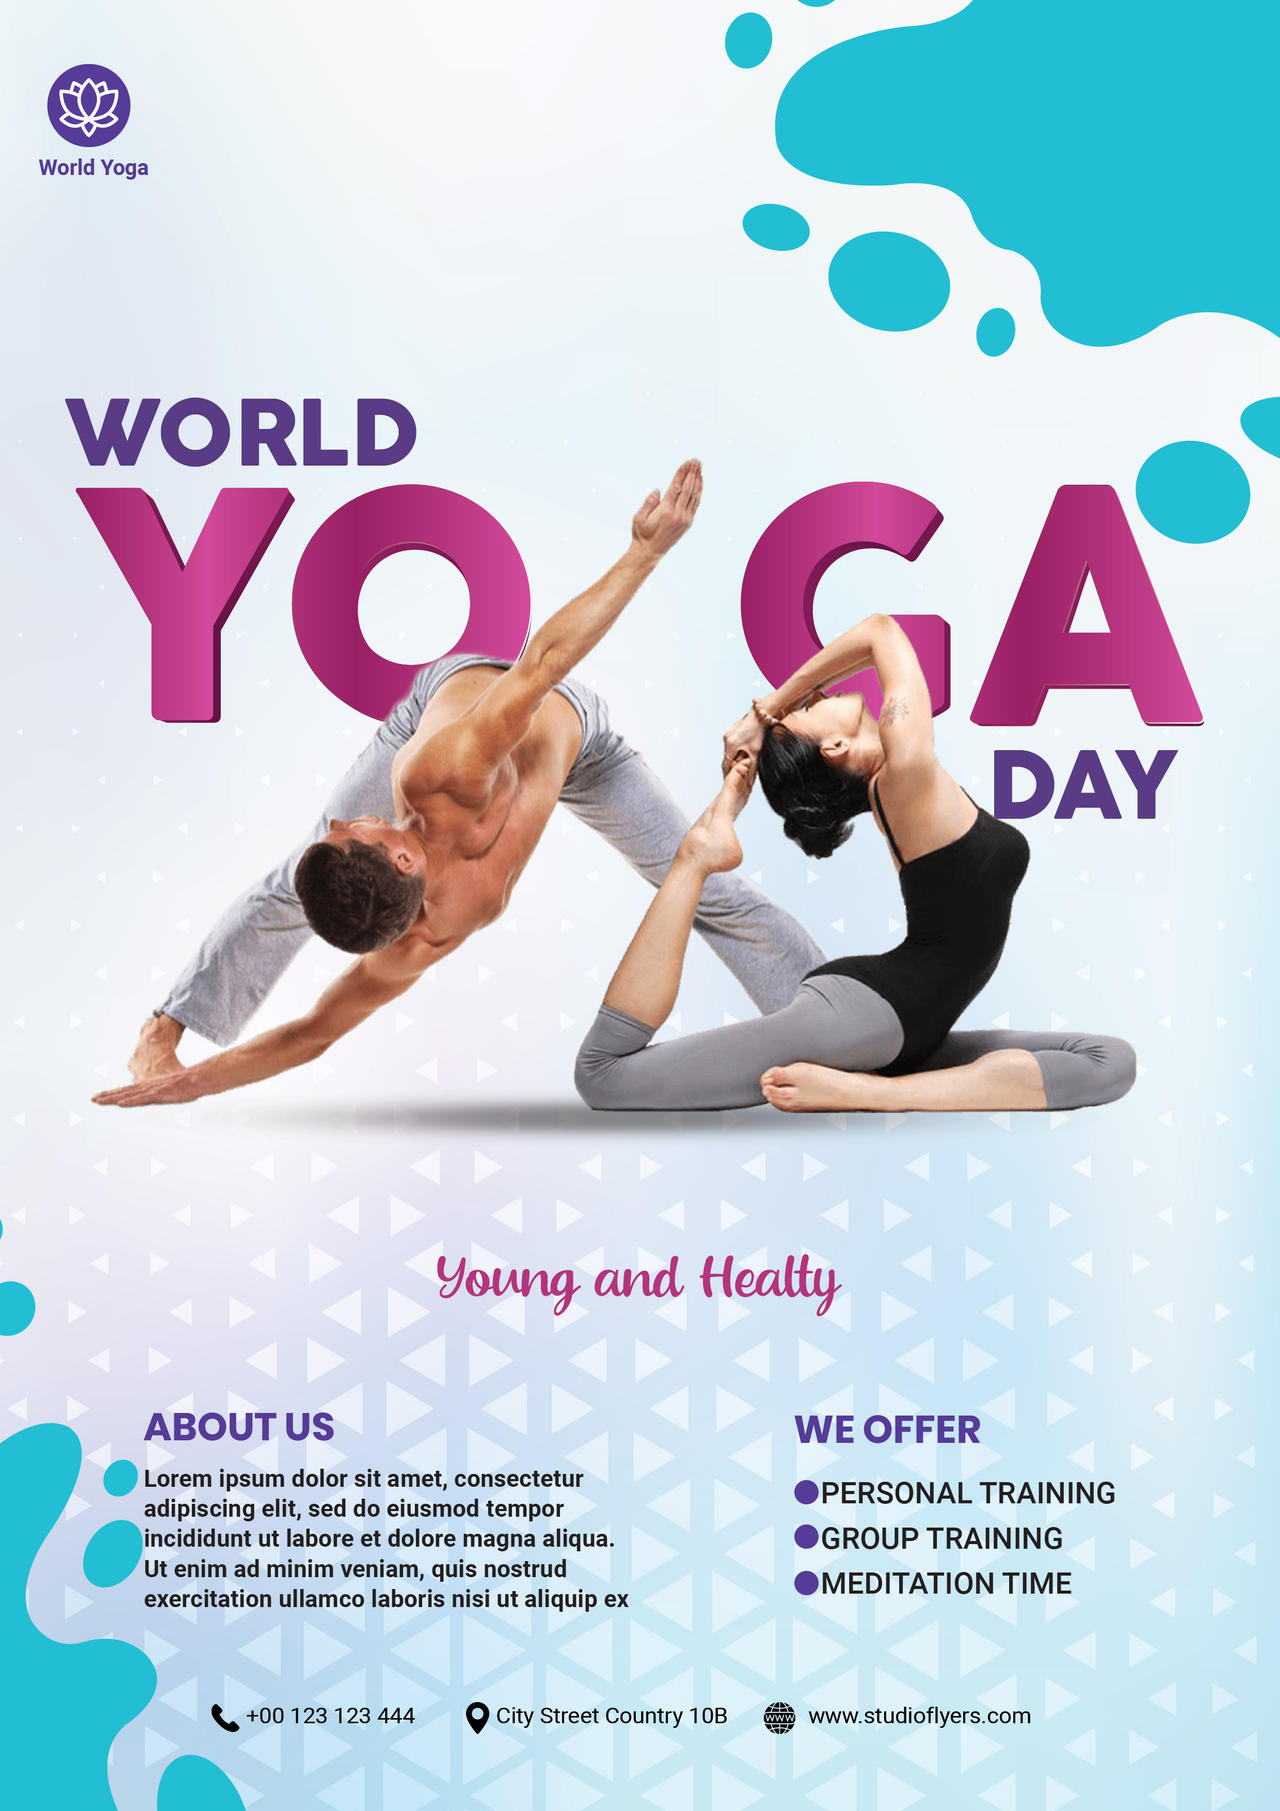 World Yoga Day Free Psd Flyer Template By Studioflyers On Deviantart